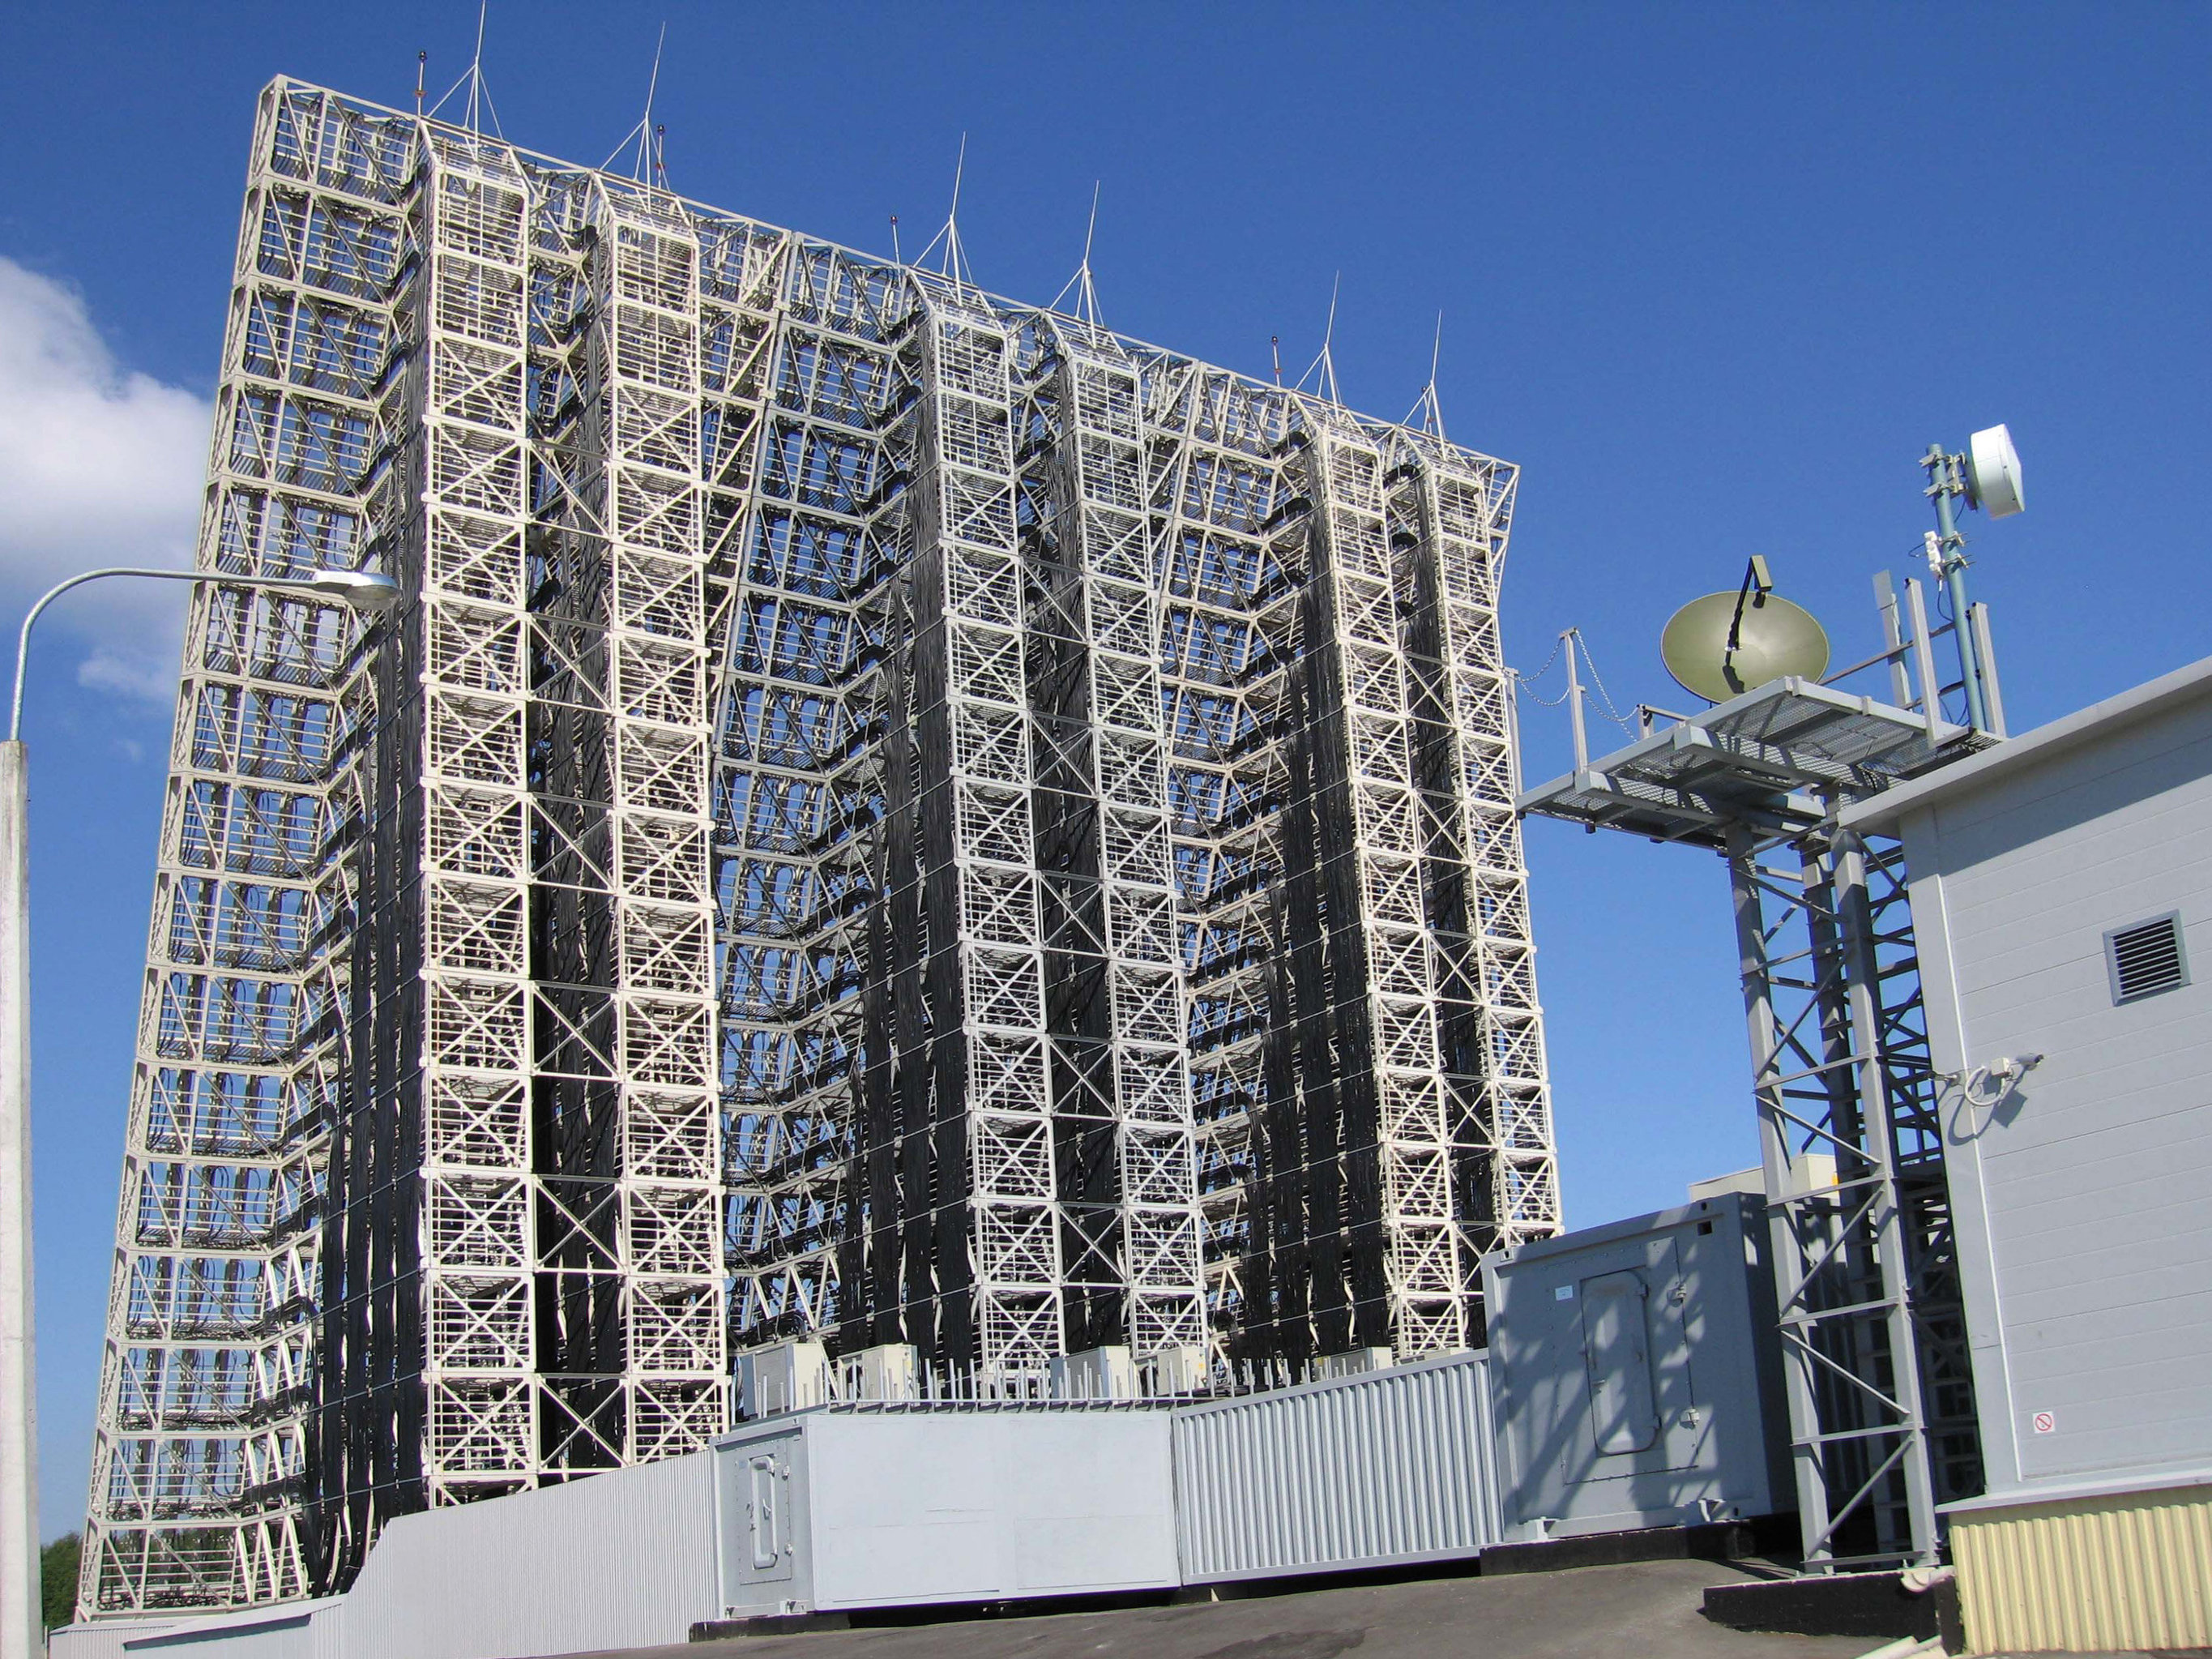 The Voronezh radar